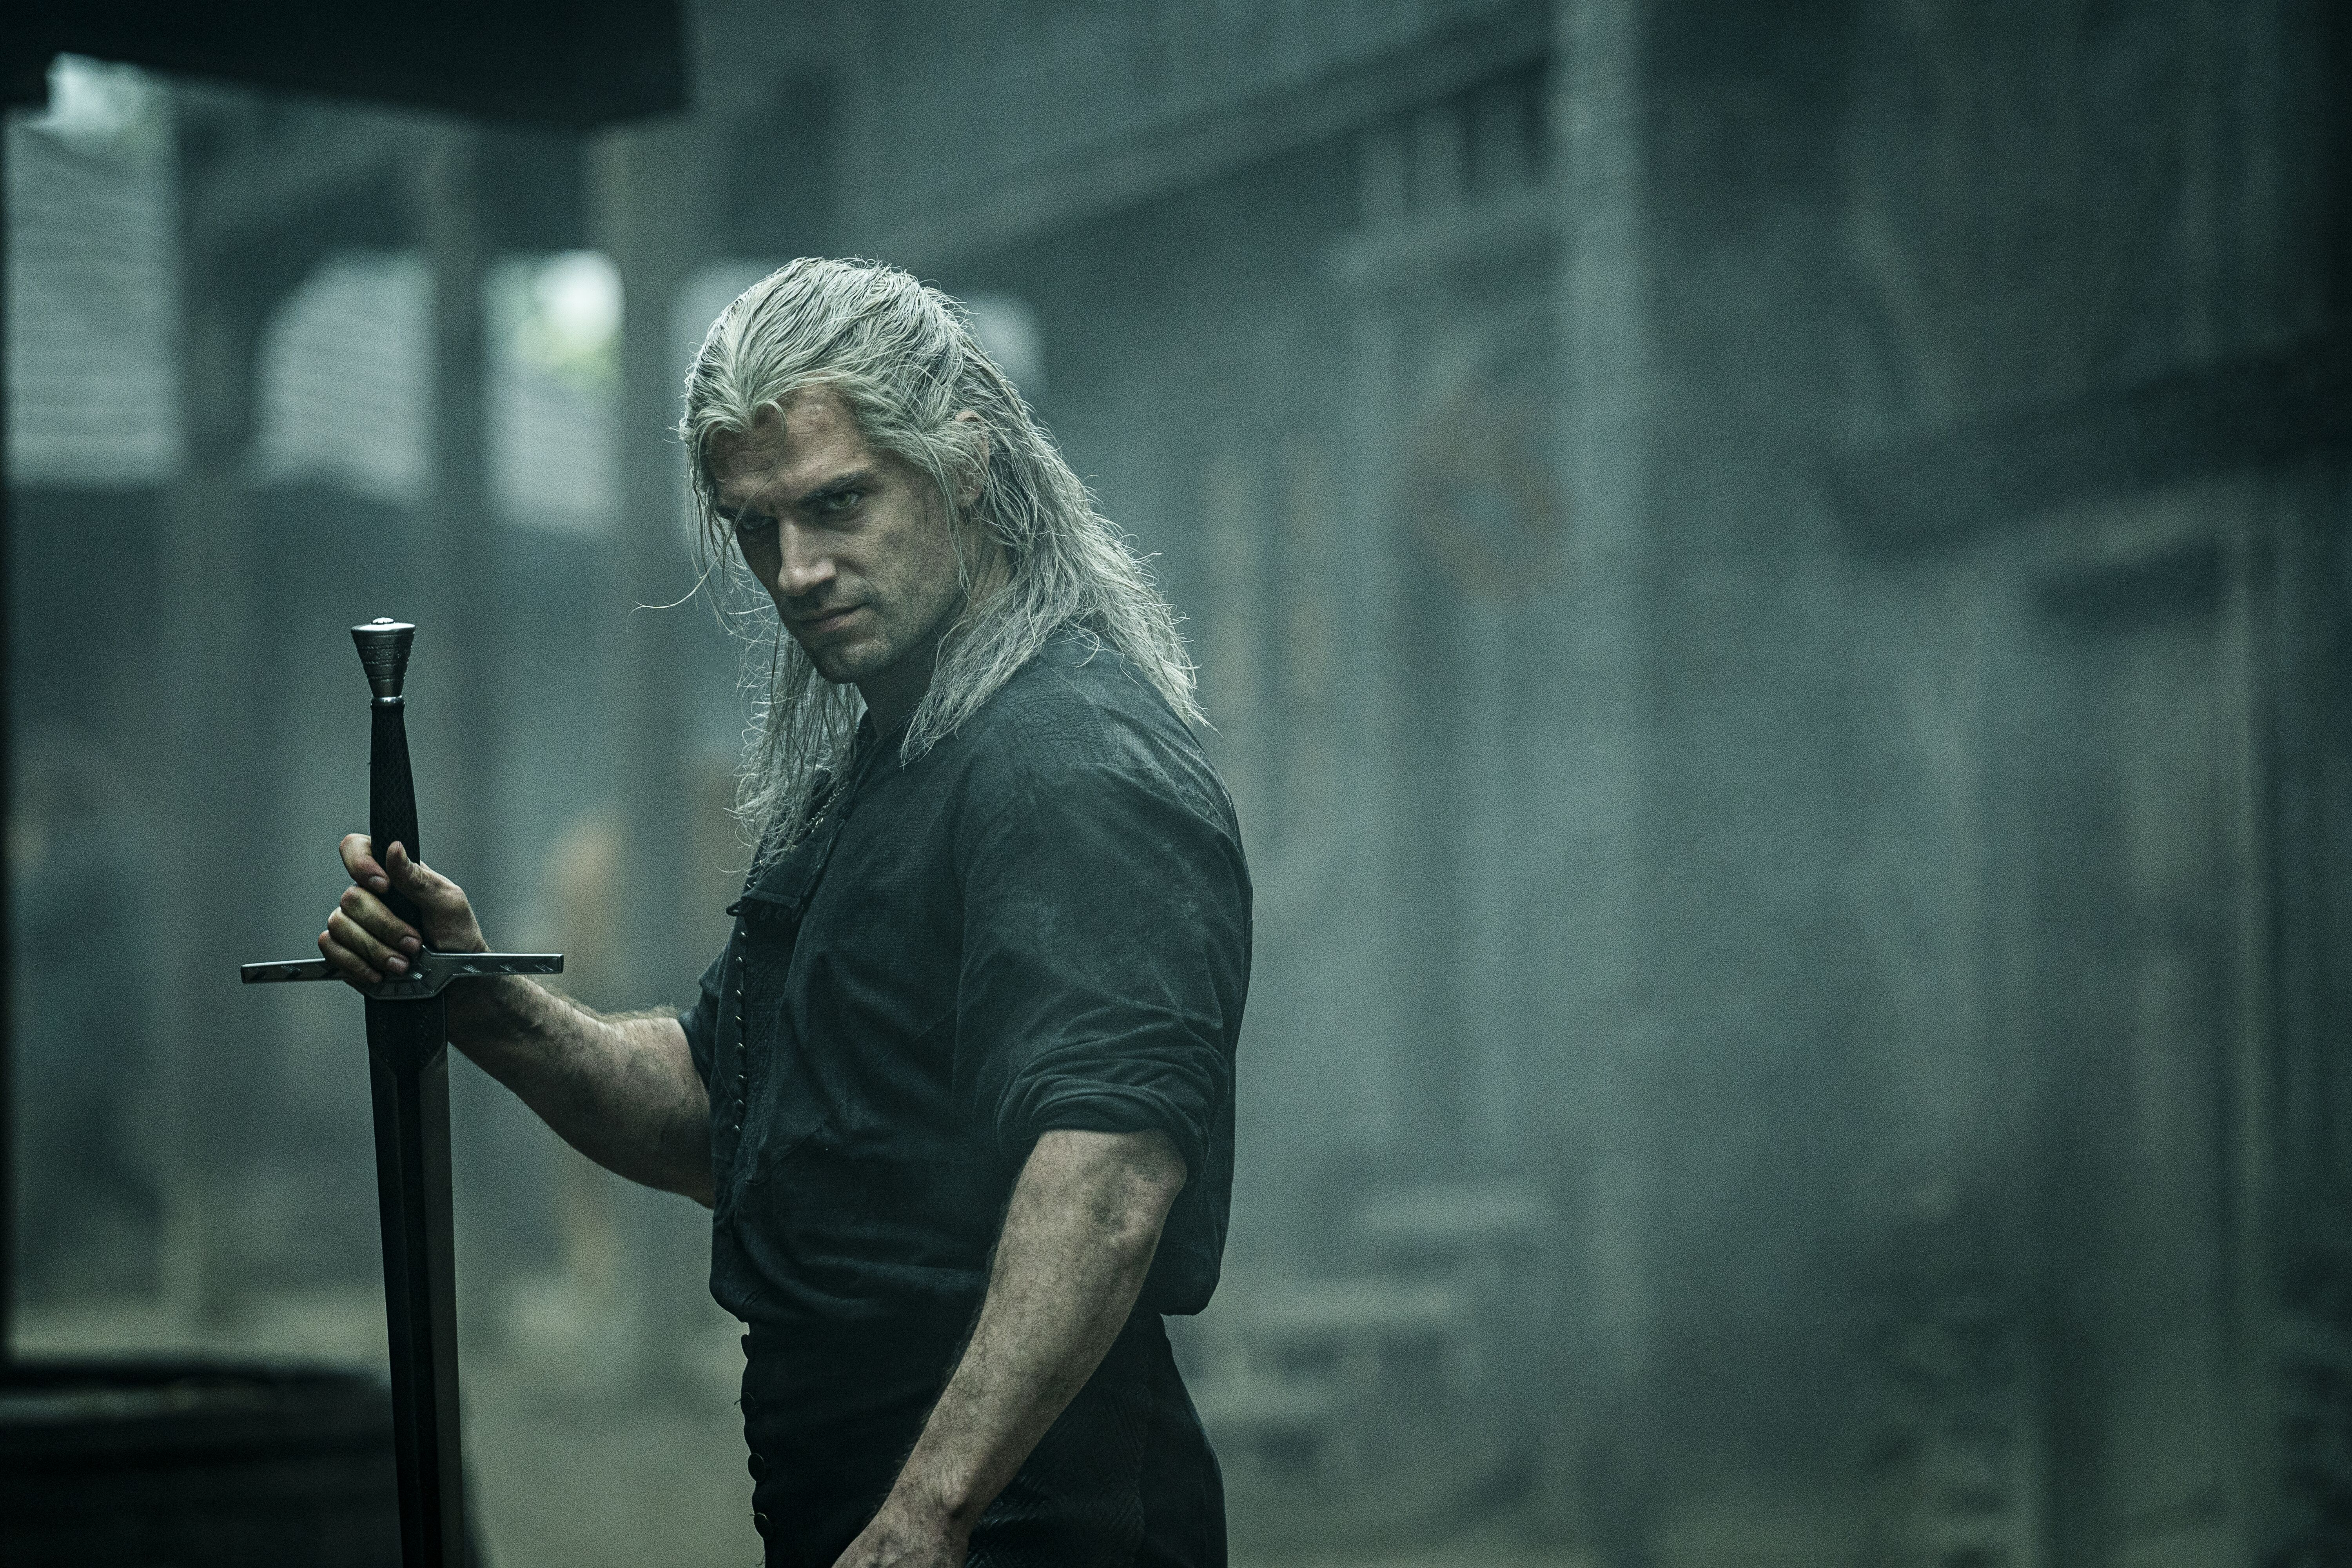 Netflix's early renewal of The Witcher is one of its boldest moves yet